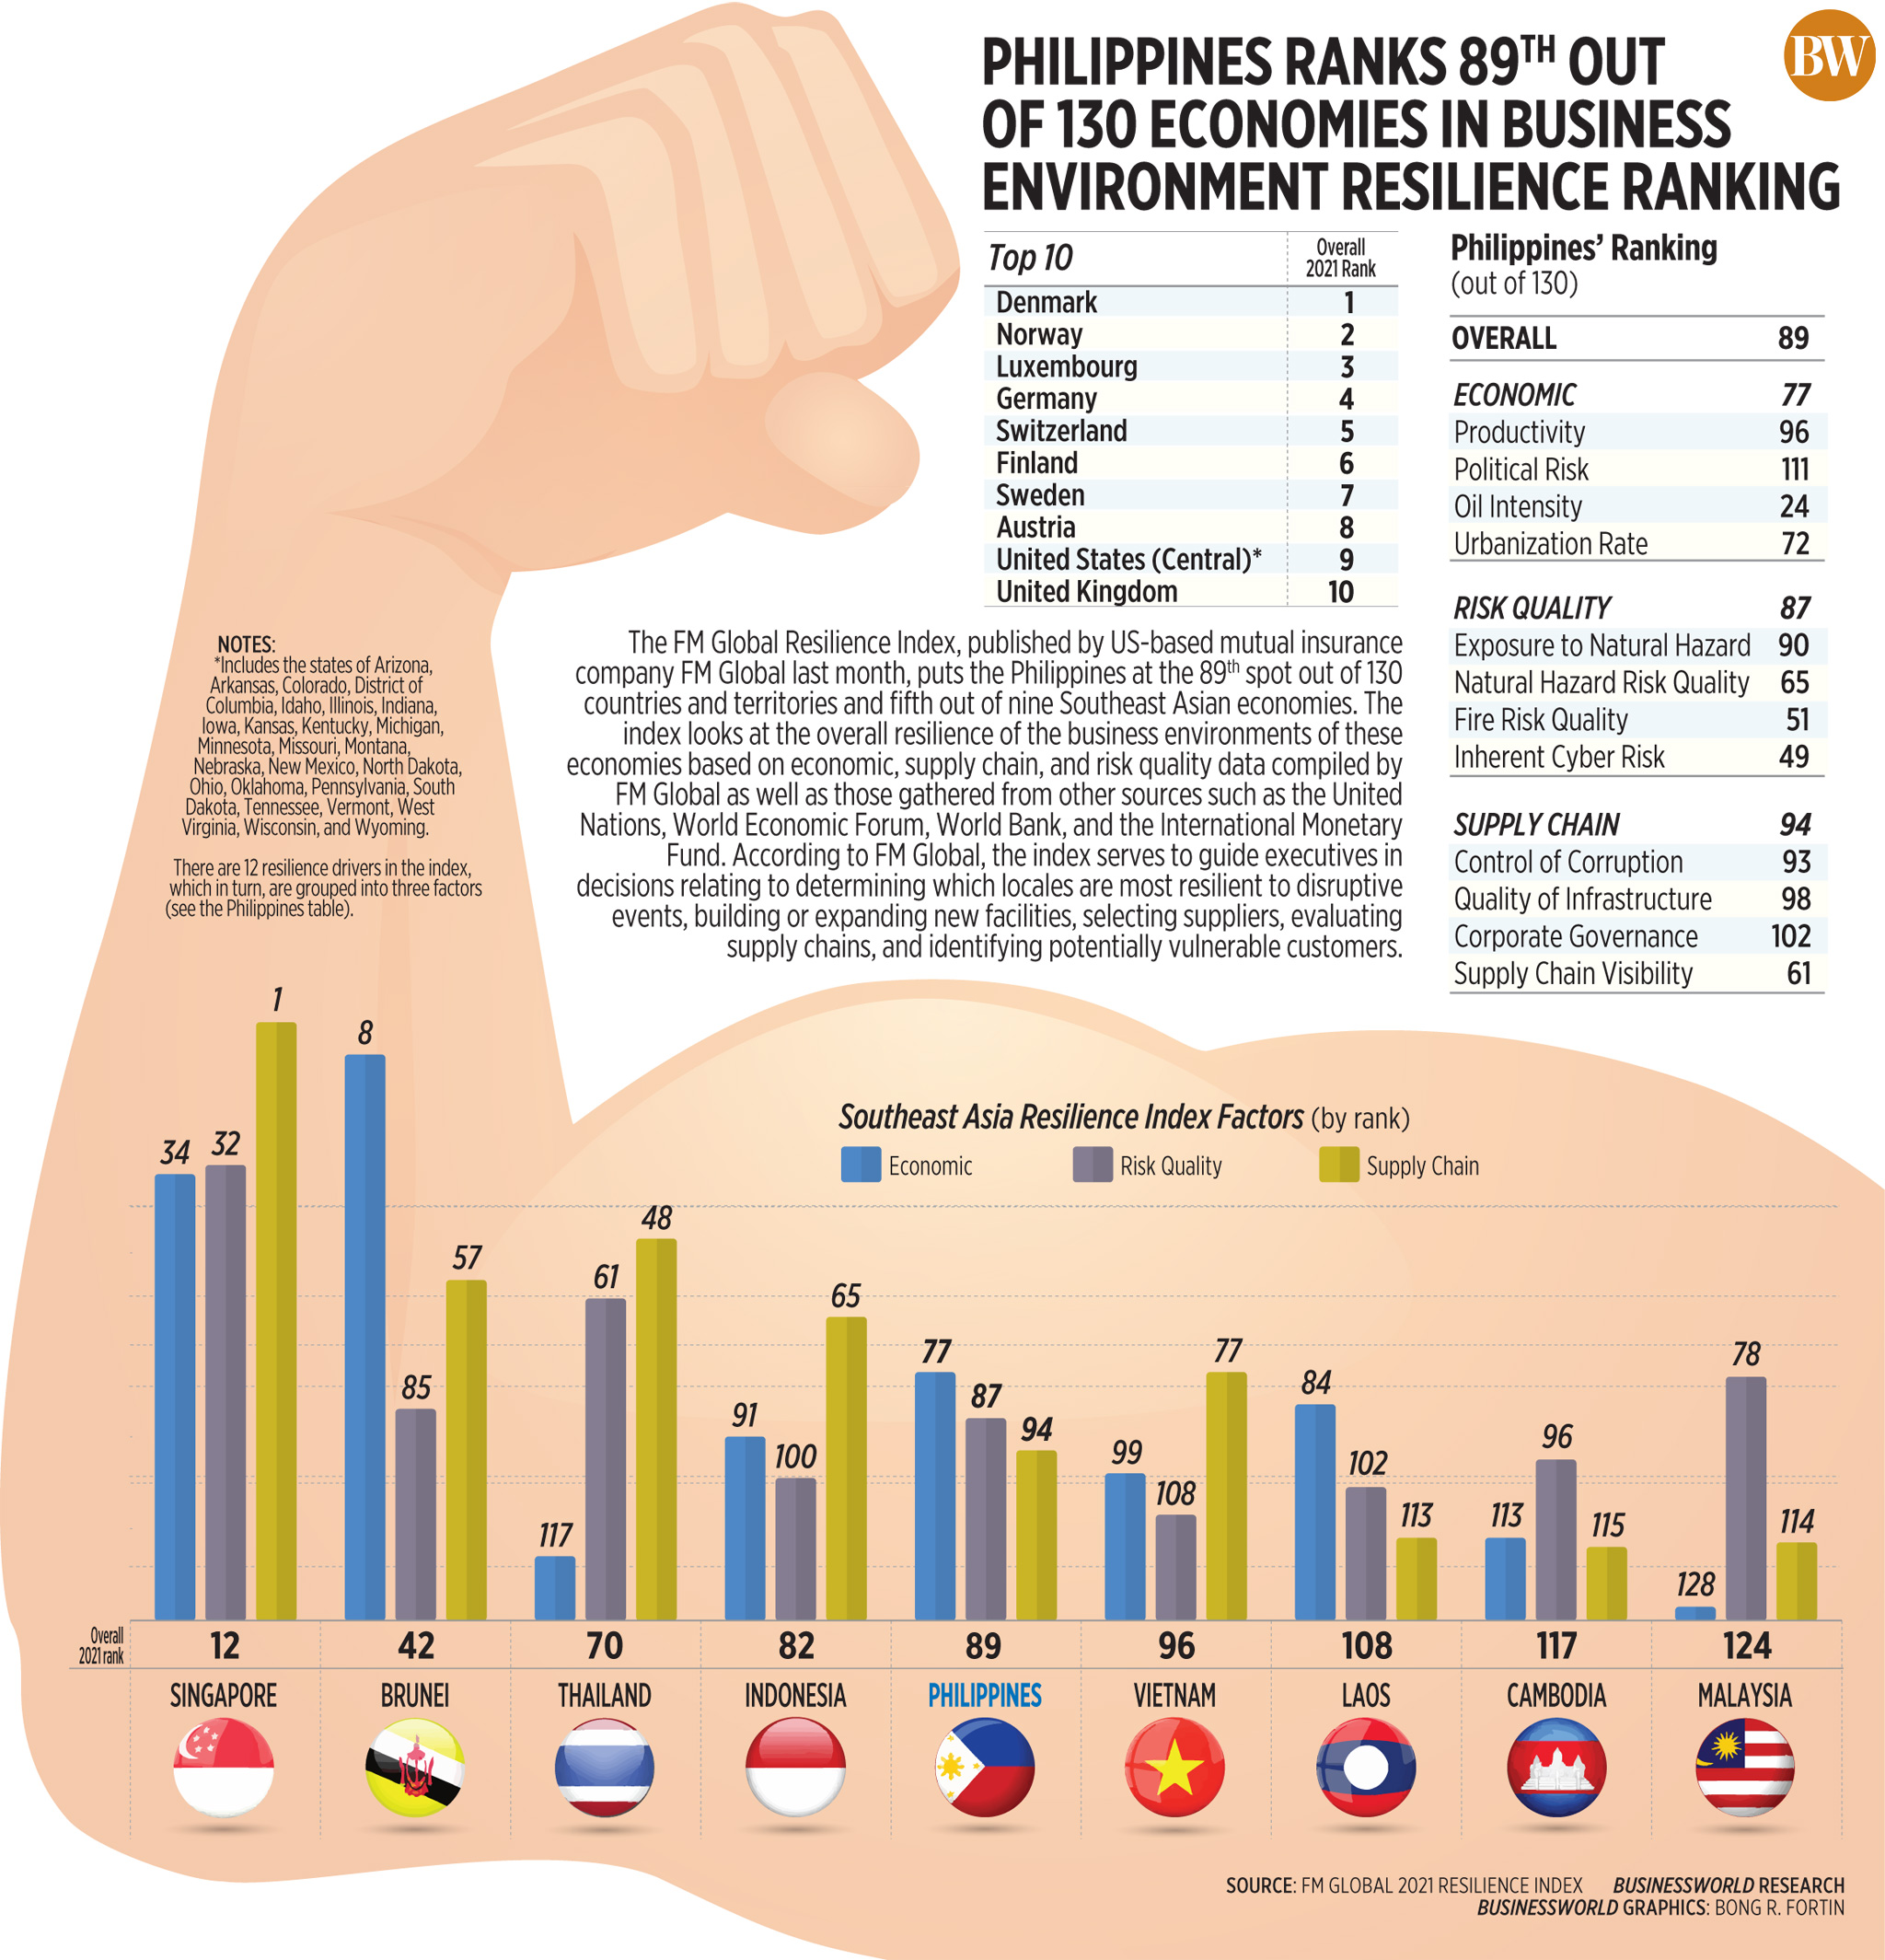 Philippines Ranks 89<sup>th</sup> out of 130 Economies in Business Environment Resilience Ranking